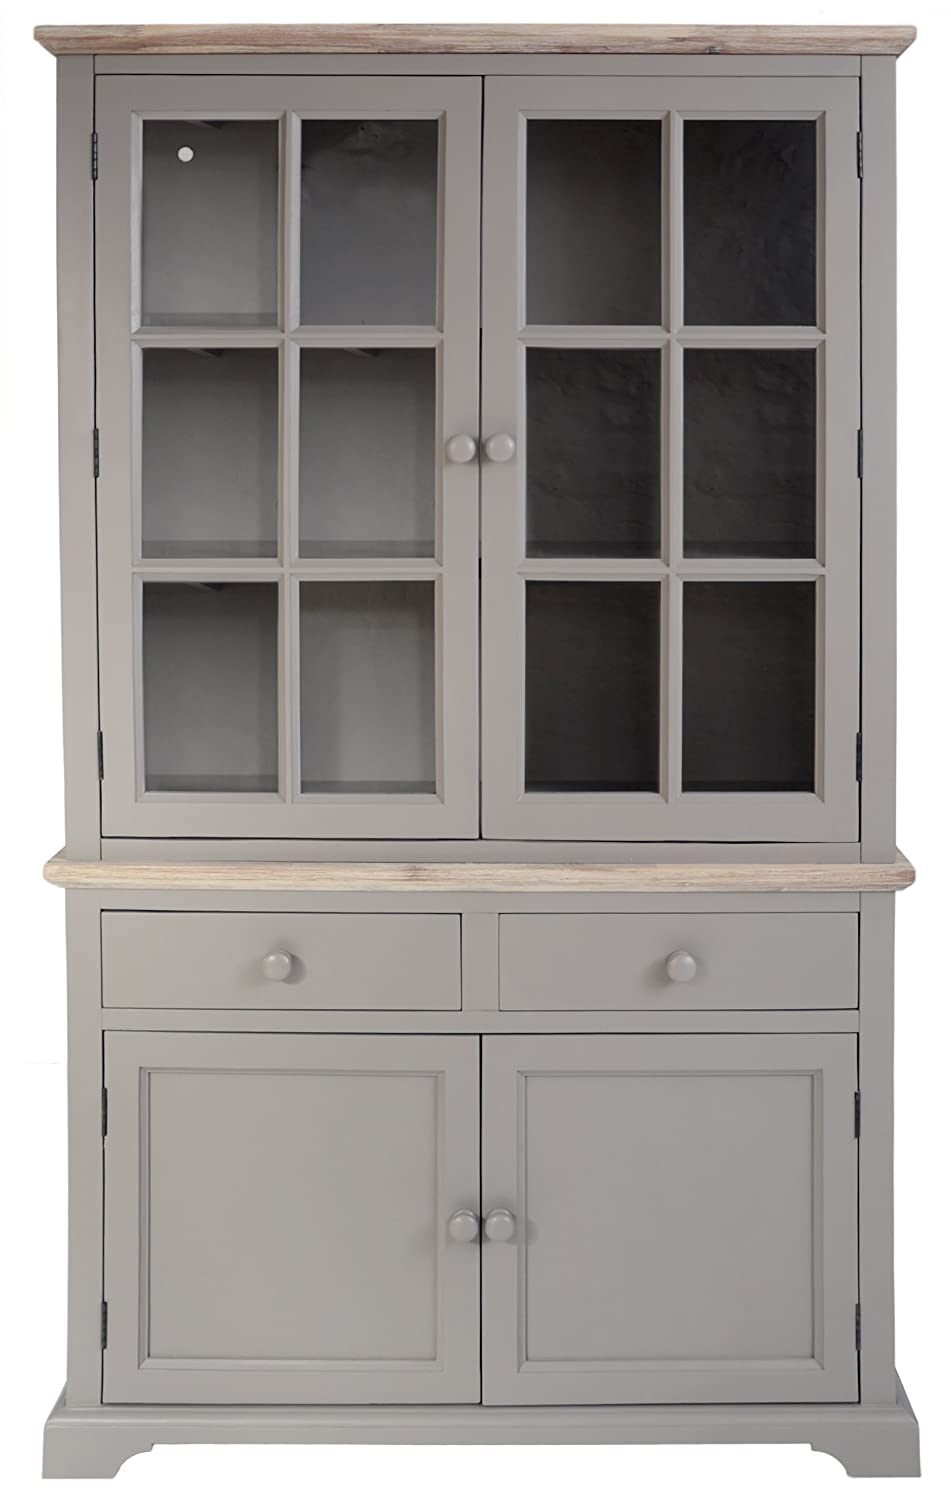 Florence Display Cabinet. Very Solid Dove Grey Glass Dresser With Cupboard,  Drawers And Shelf. ASSEMBLED: Amazon.co.uk: Kitchen U0026 Home